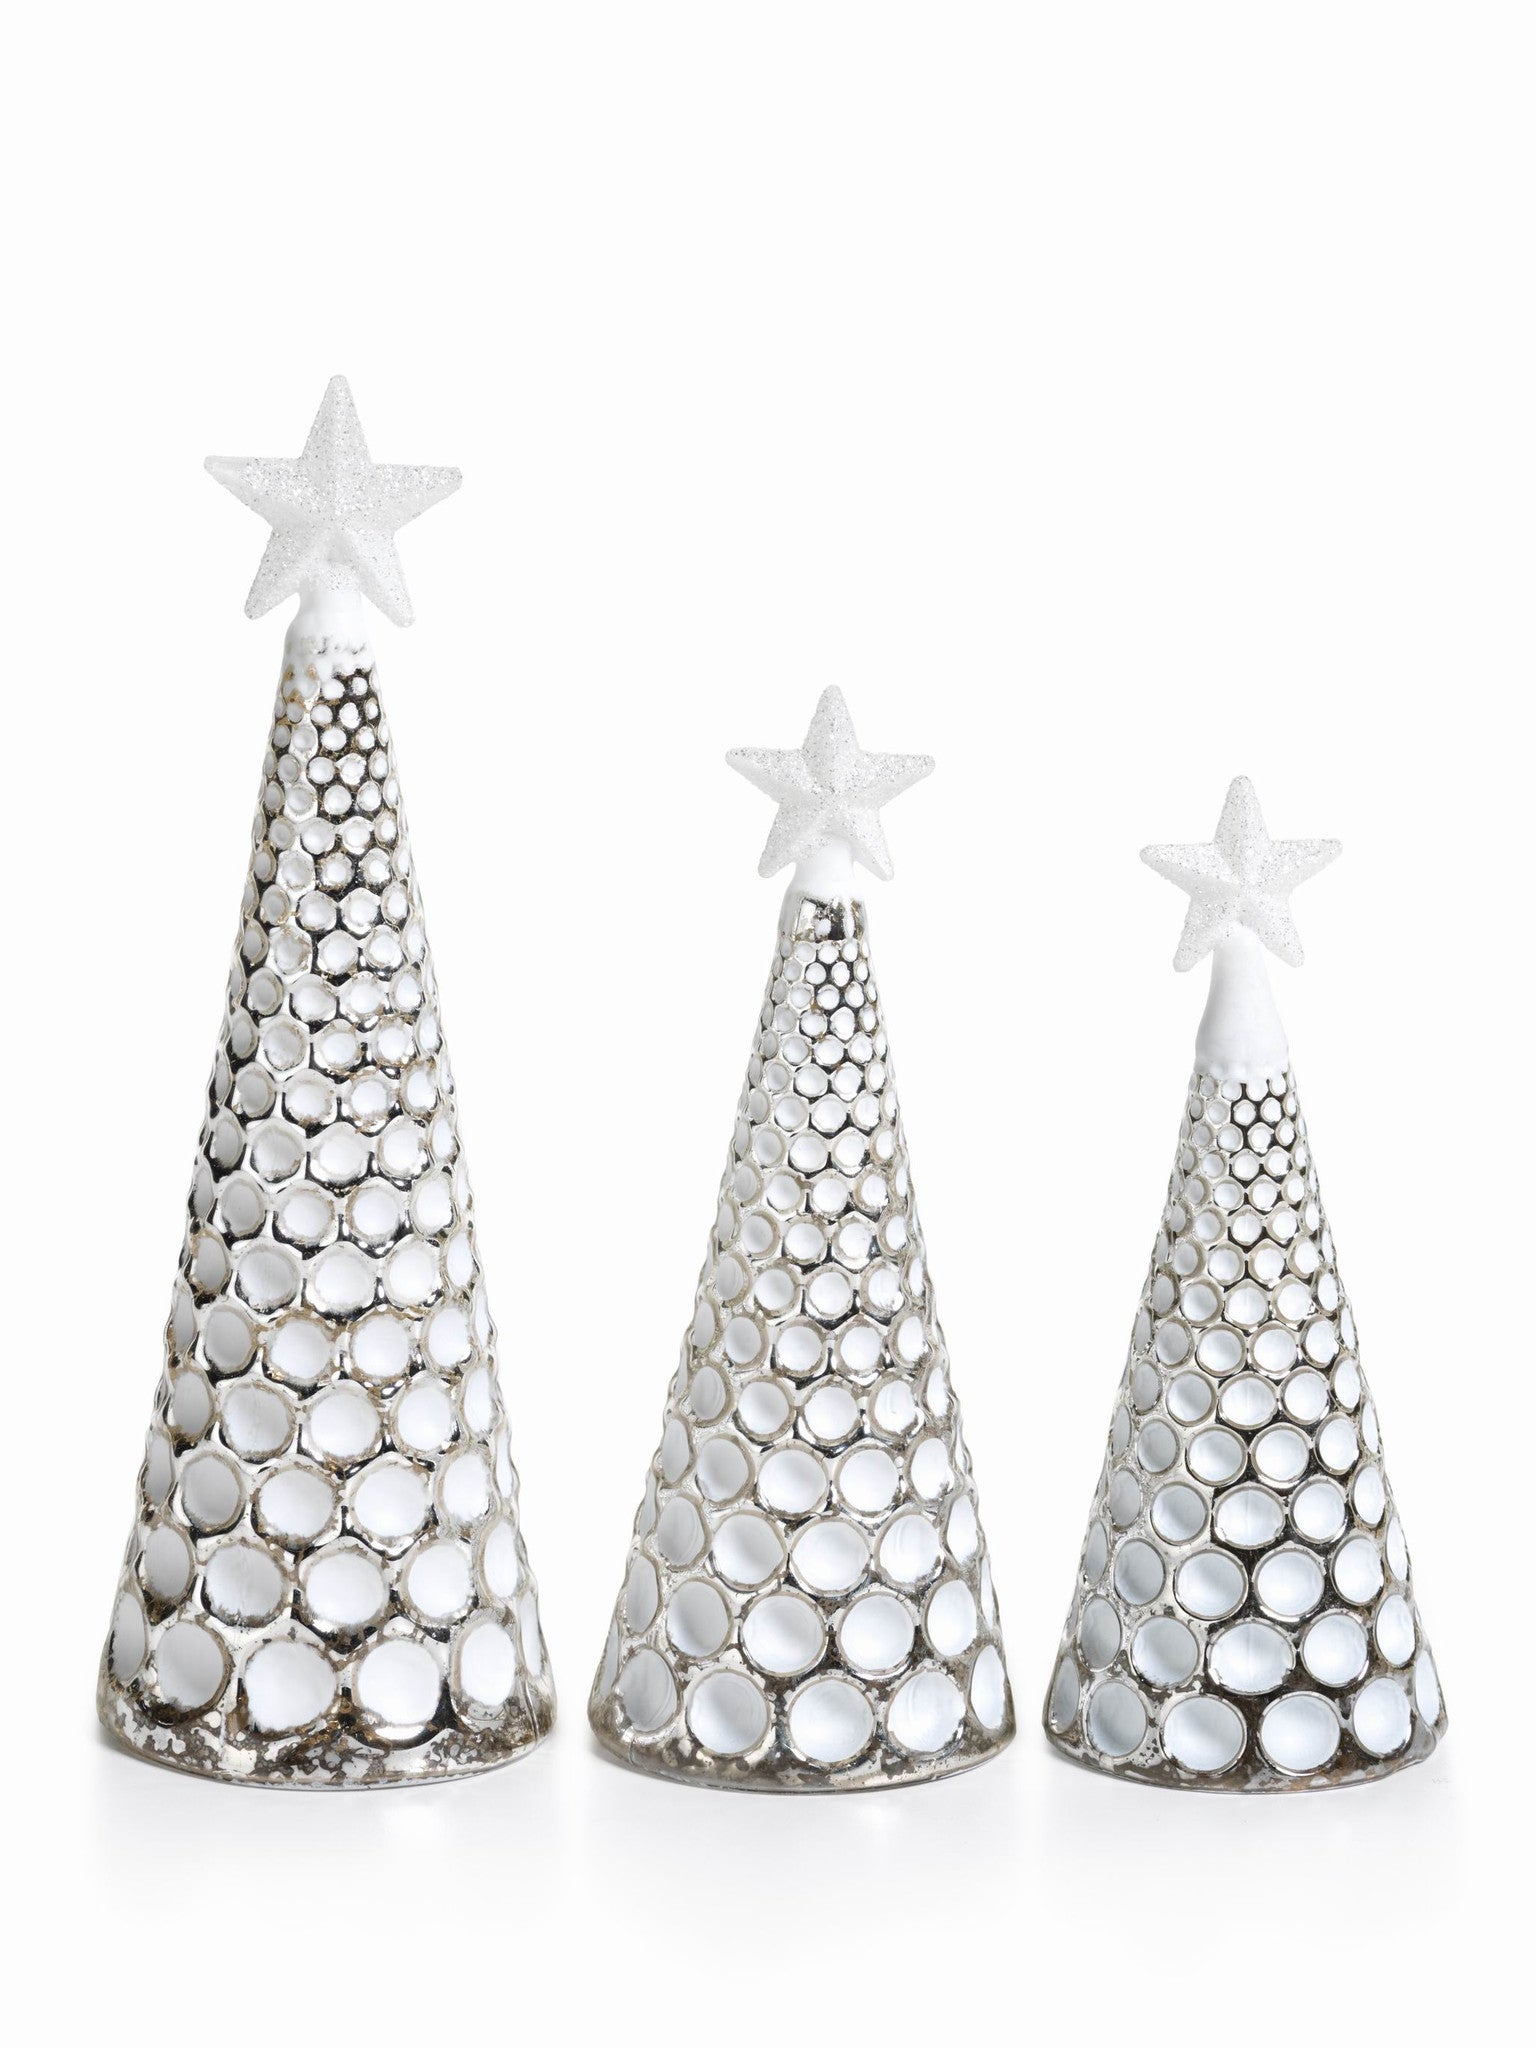 LED Glass Decorative Tree - Silver - Set of 6 -  - CARLYLE AVENUE - 14